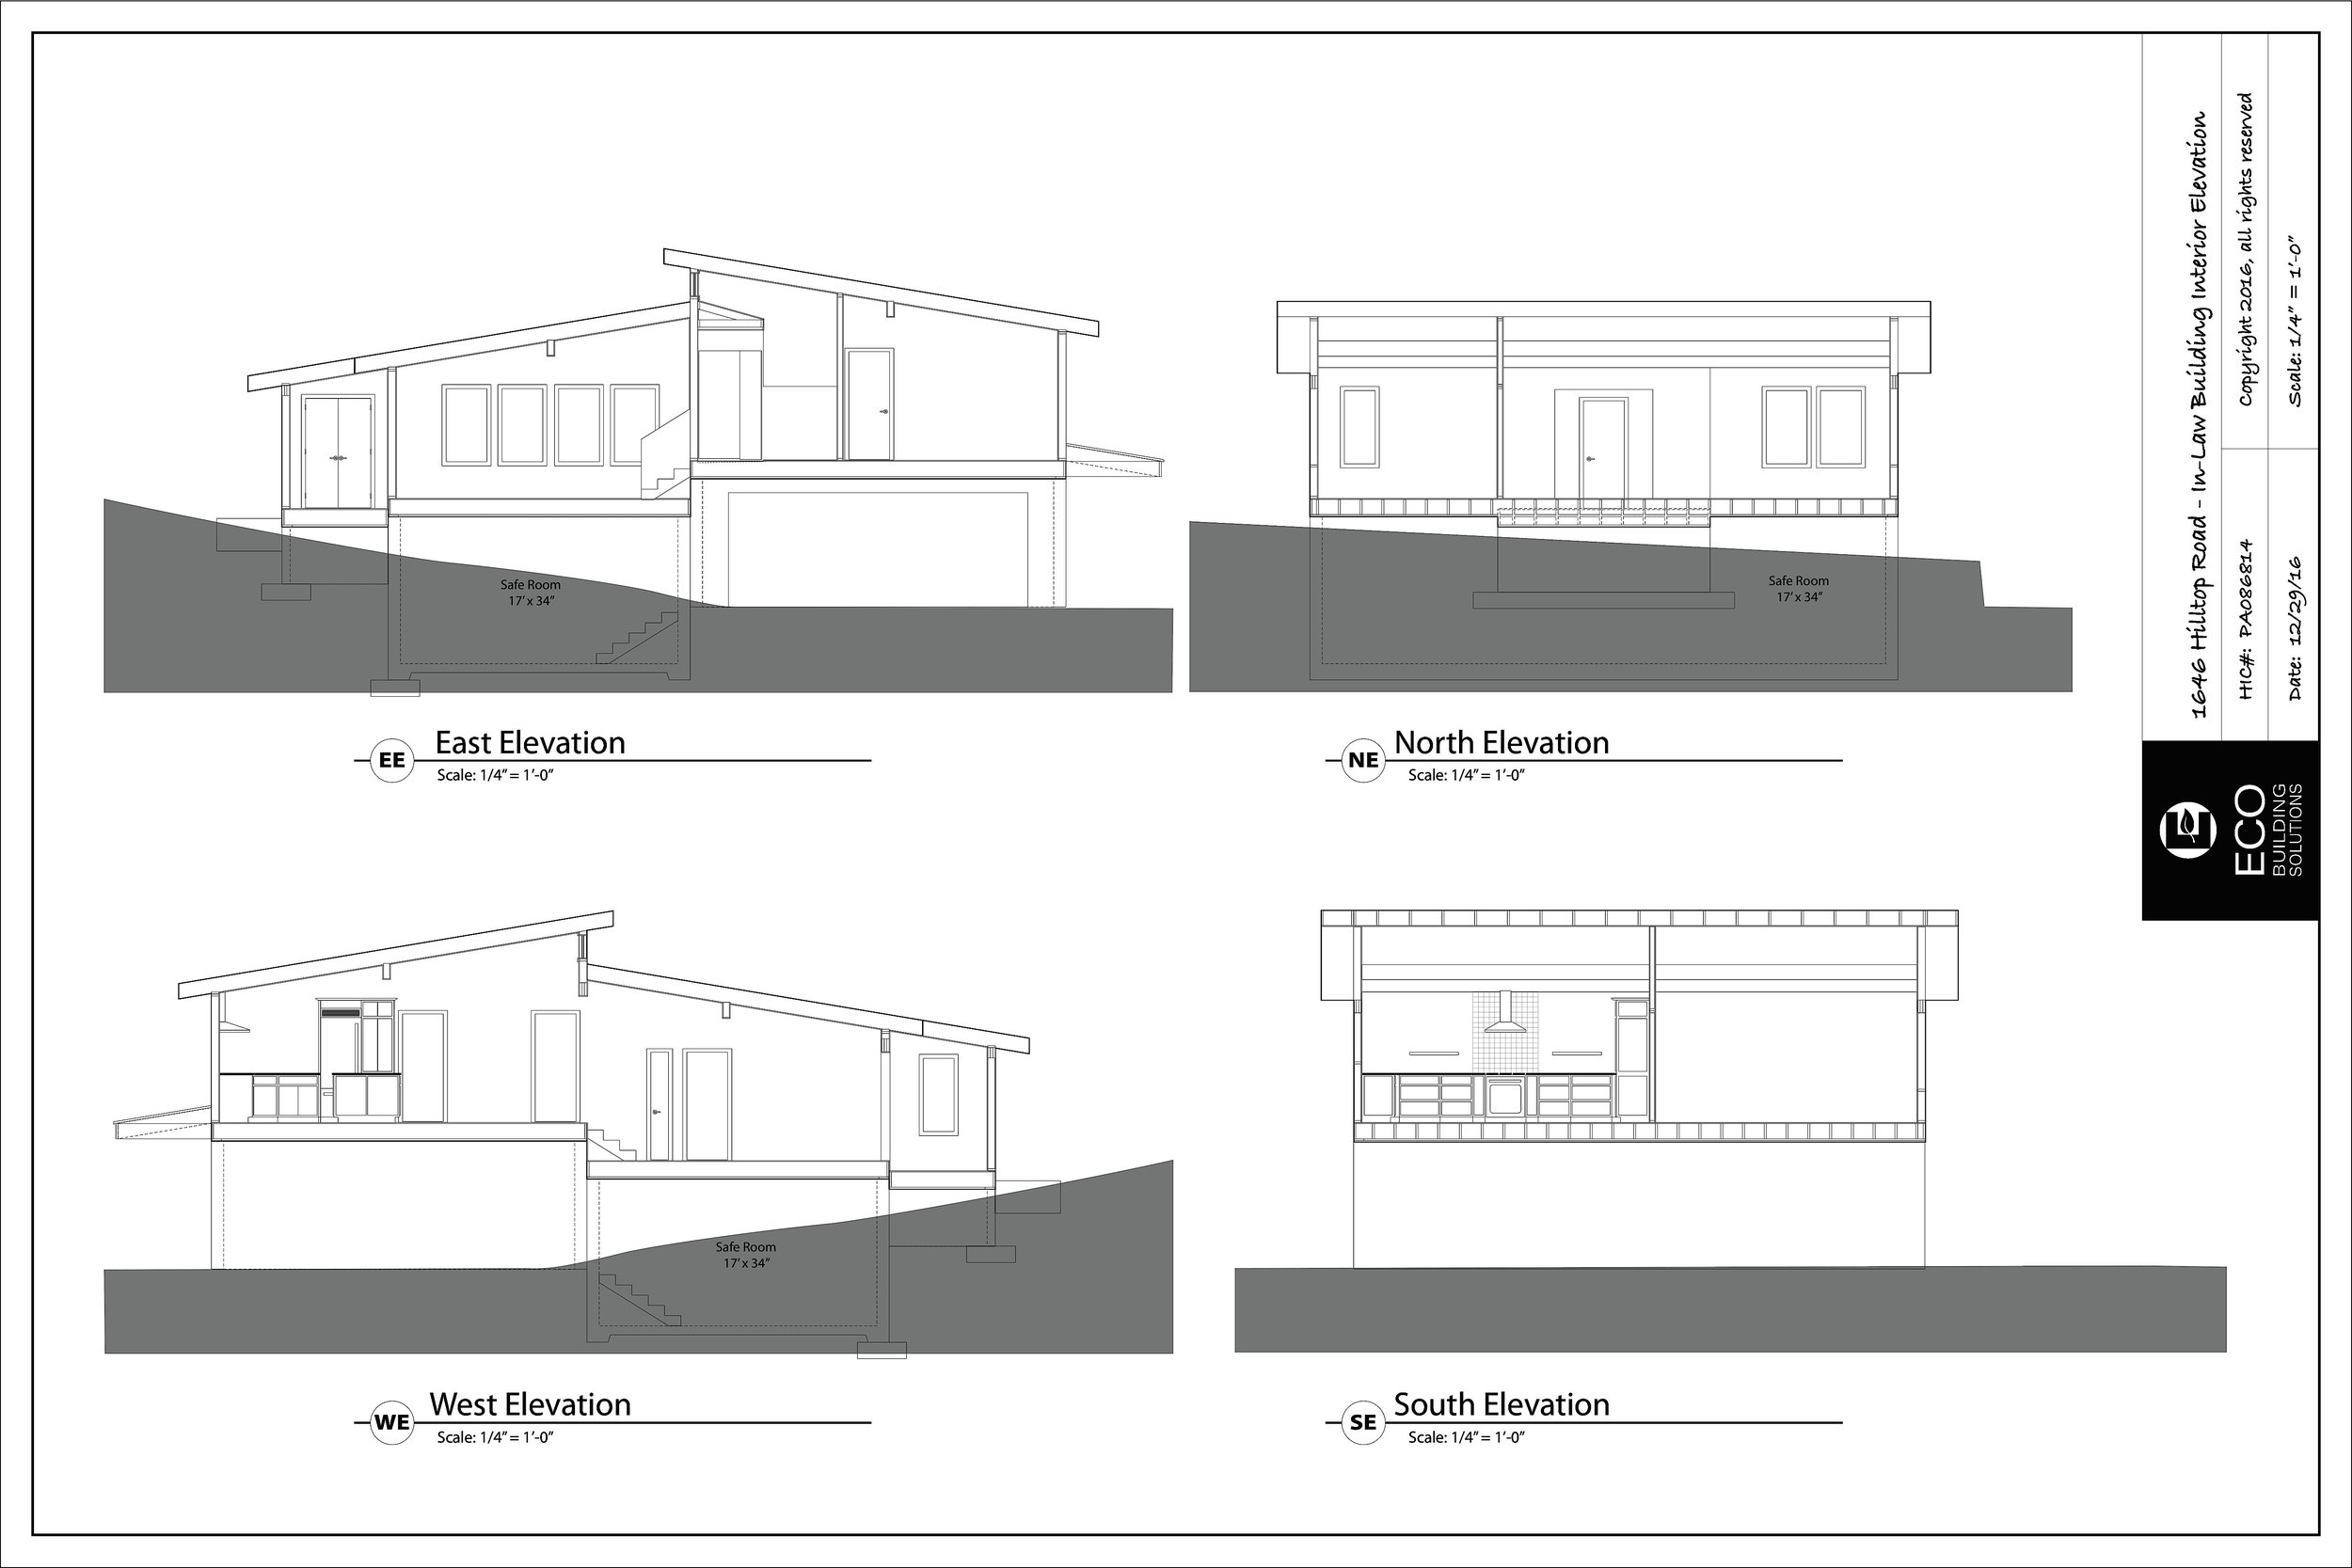 Swanson InLaw Int Elevations1-4.jpg